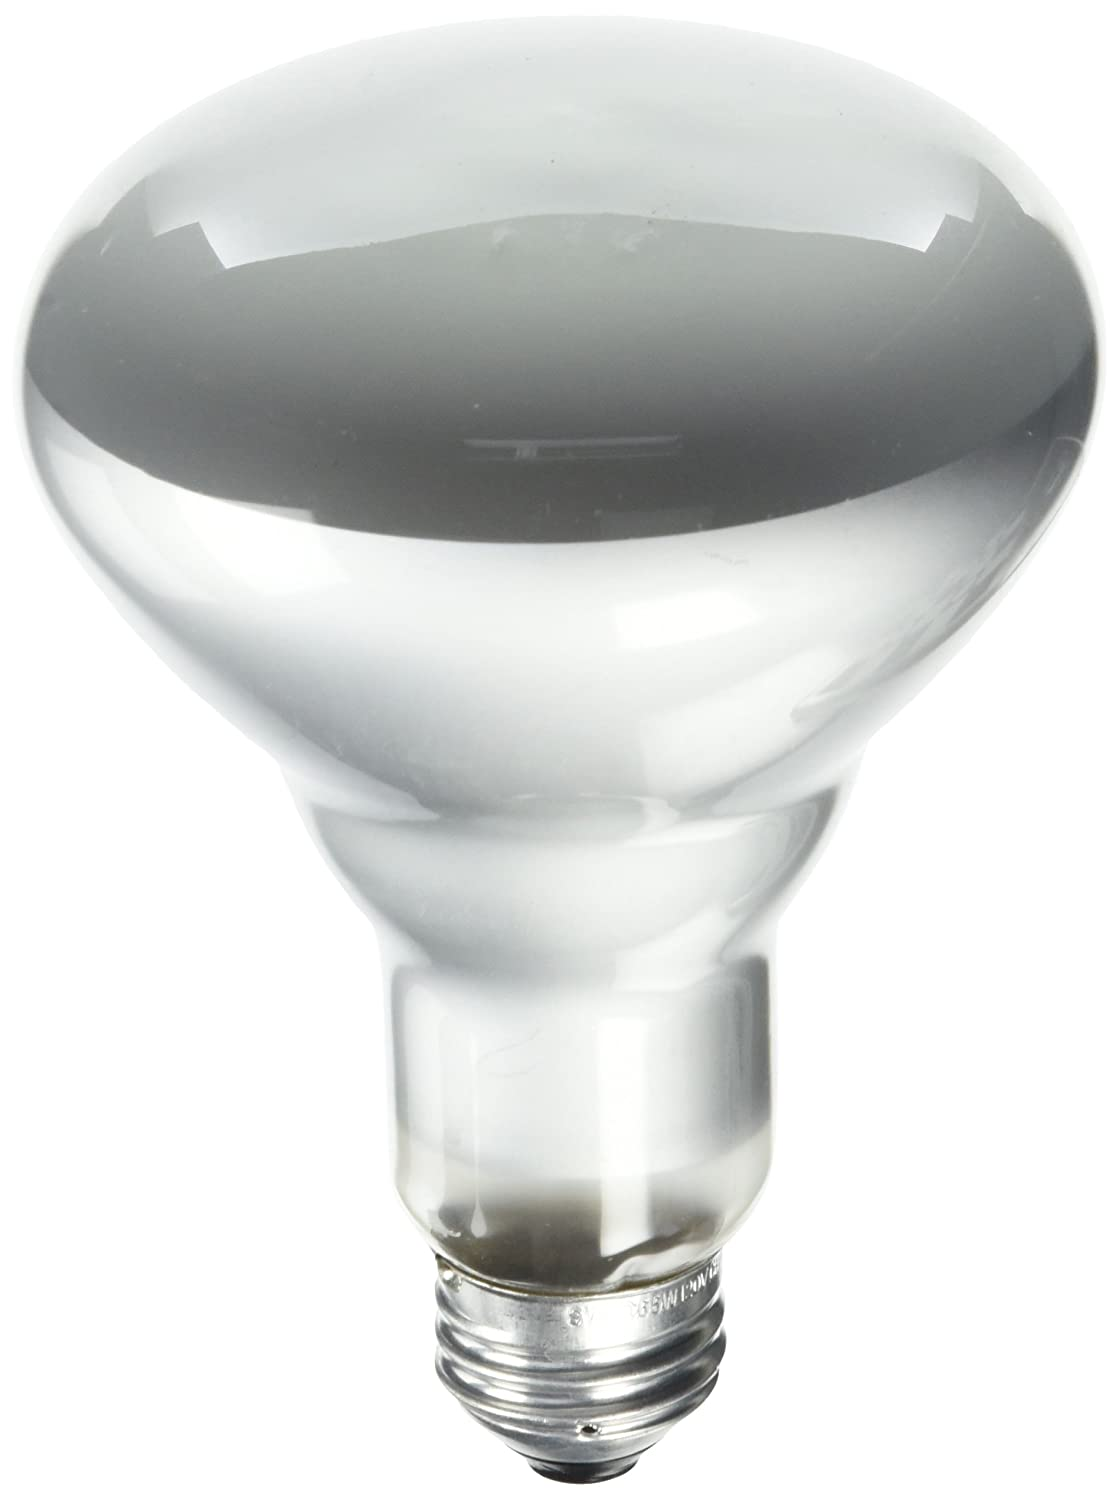 Sylvania Flood Light Bulbs 9 Pack Image 1